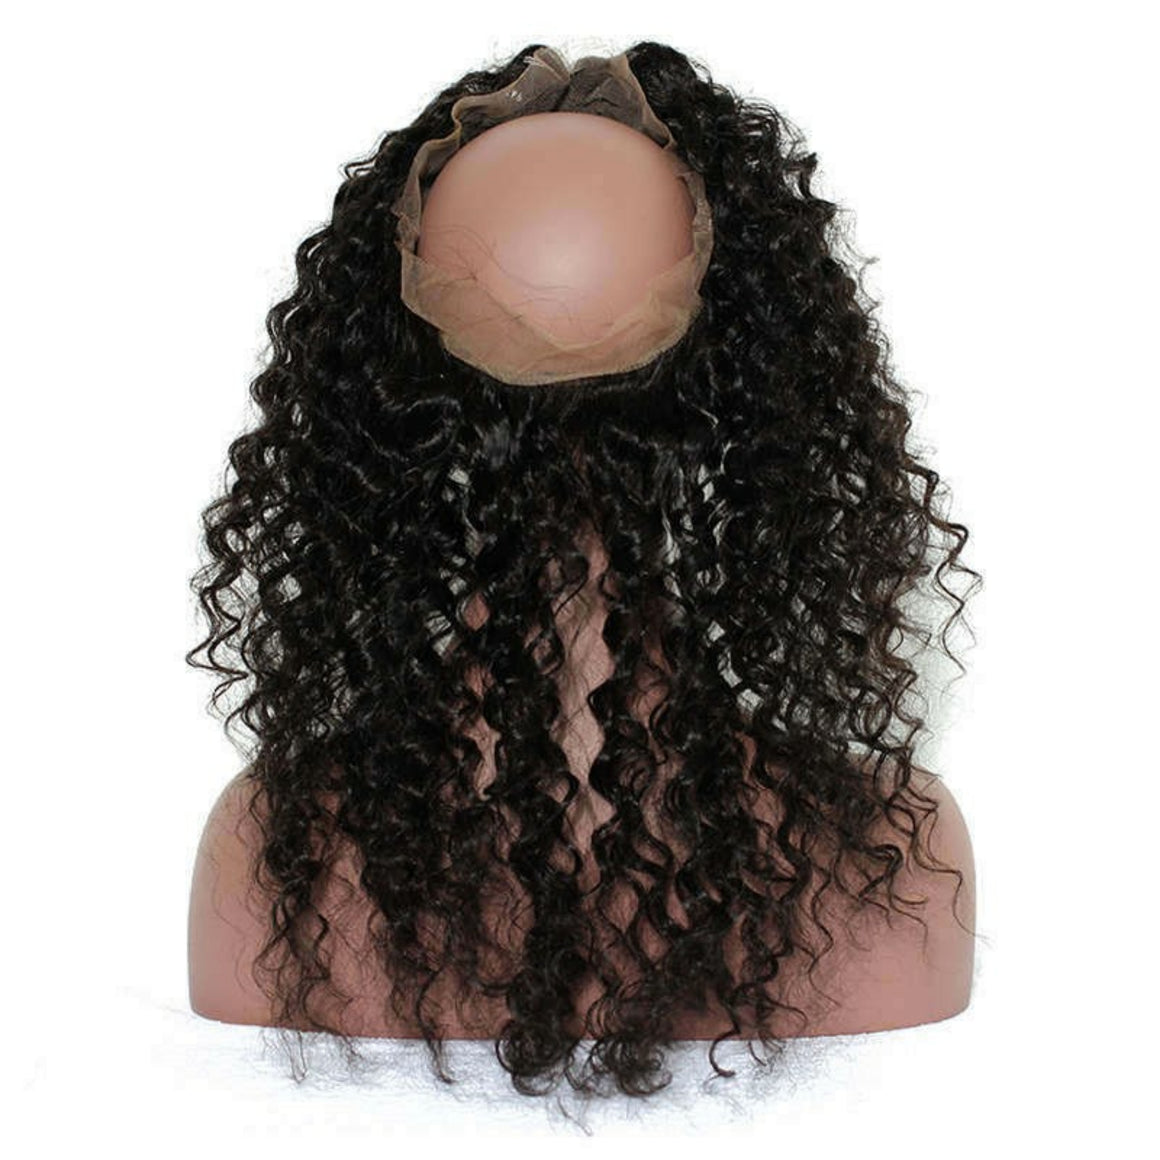 360 Lace Deep wave Frontal closure, pre-plucked, with baby hairs. Brazilian, Indian, Malaysian, Peruvian - mslhair